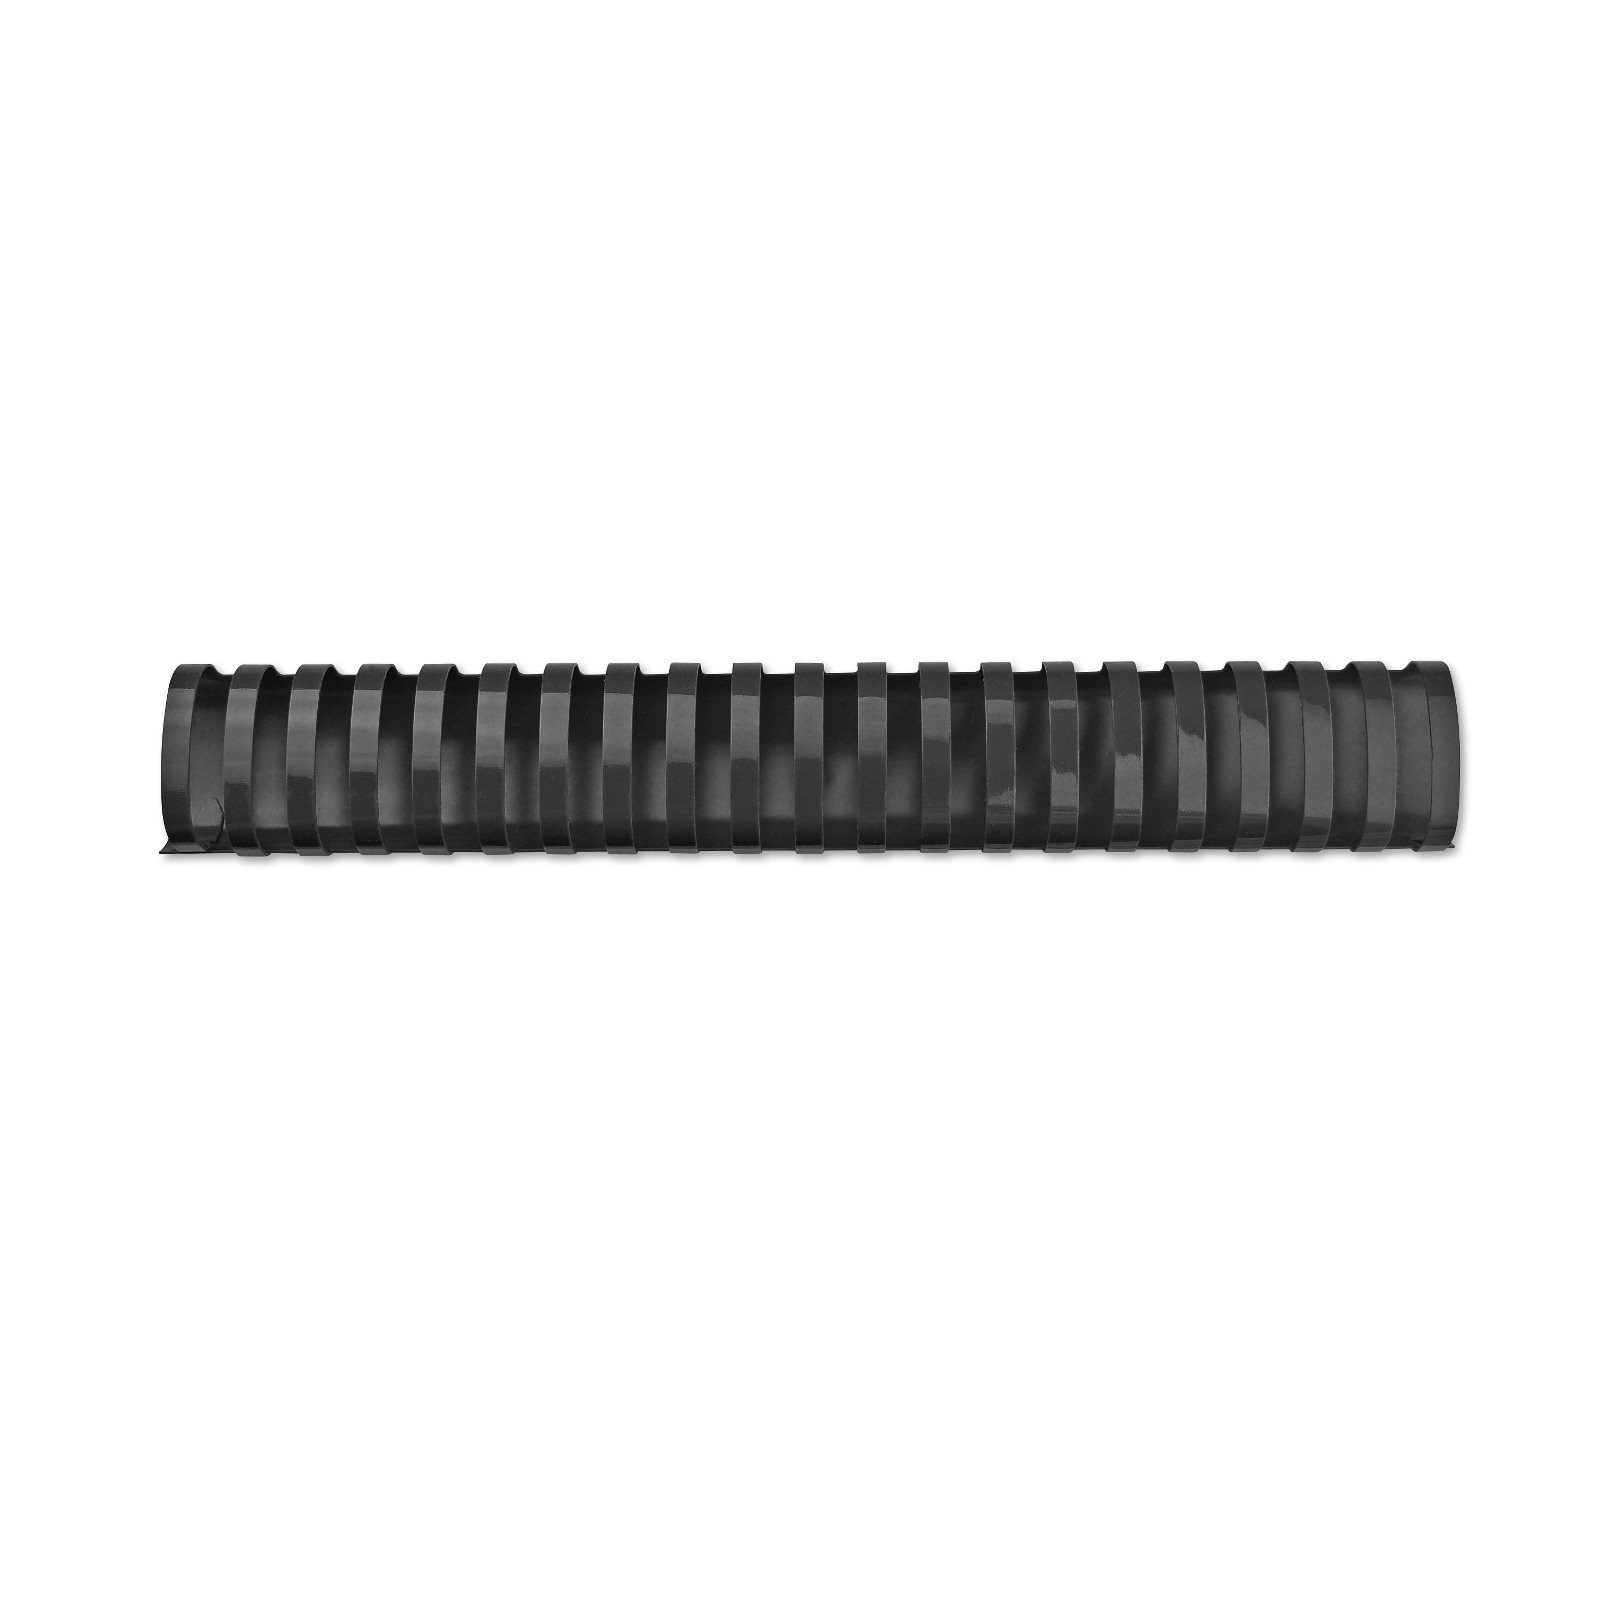 GBC Binding Combs 21 Ring A4 32mm Black 4028184 (PK50)